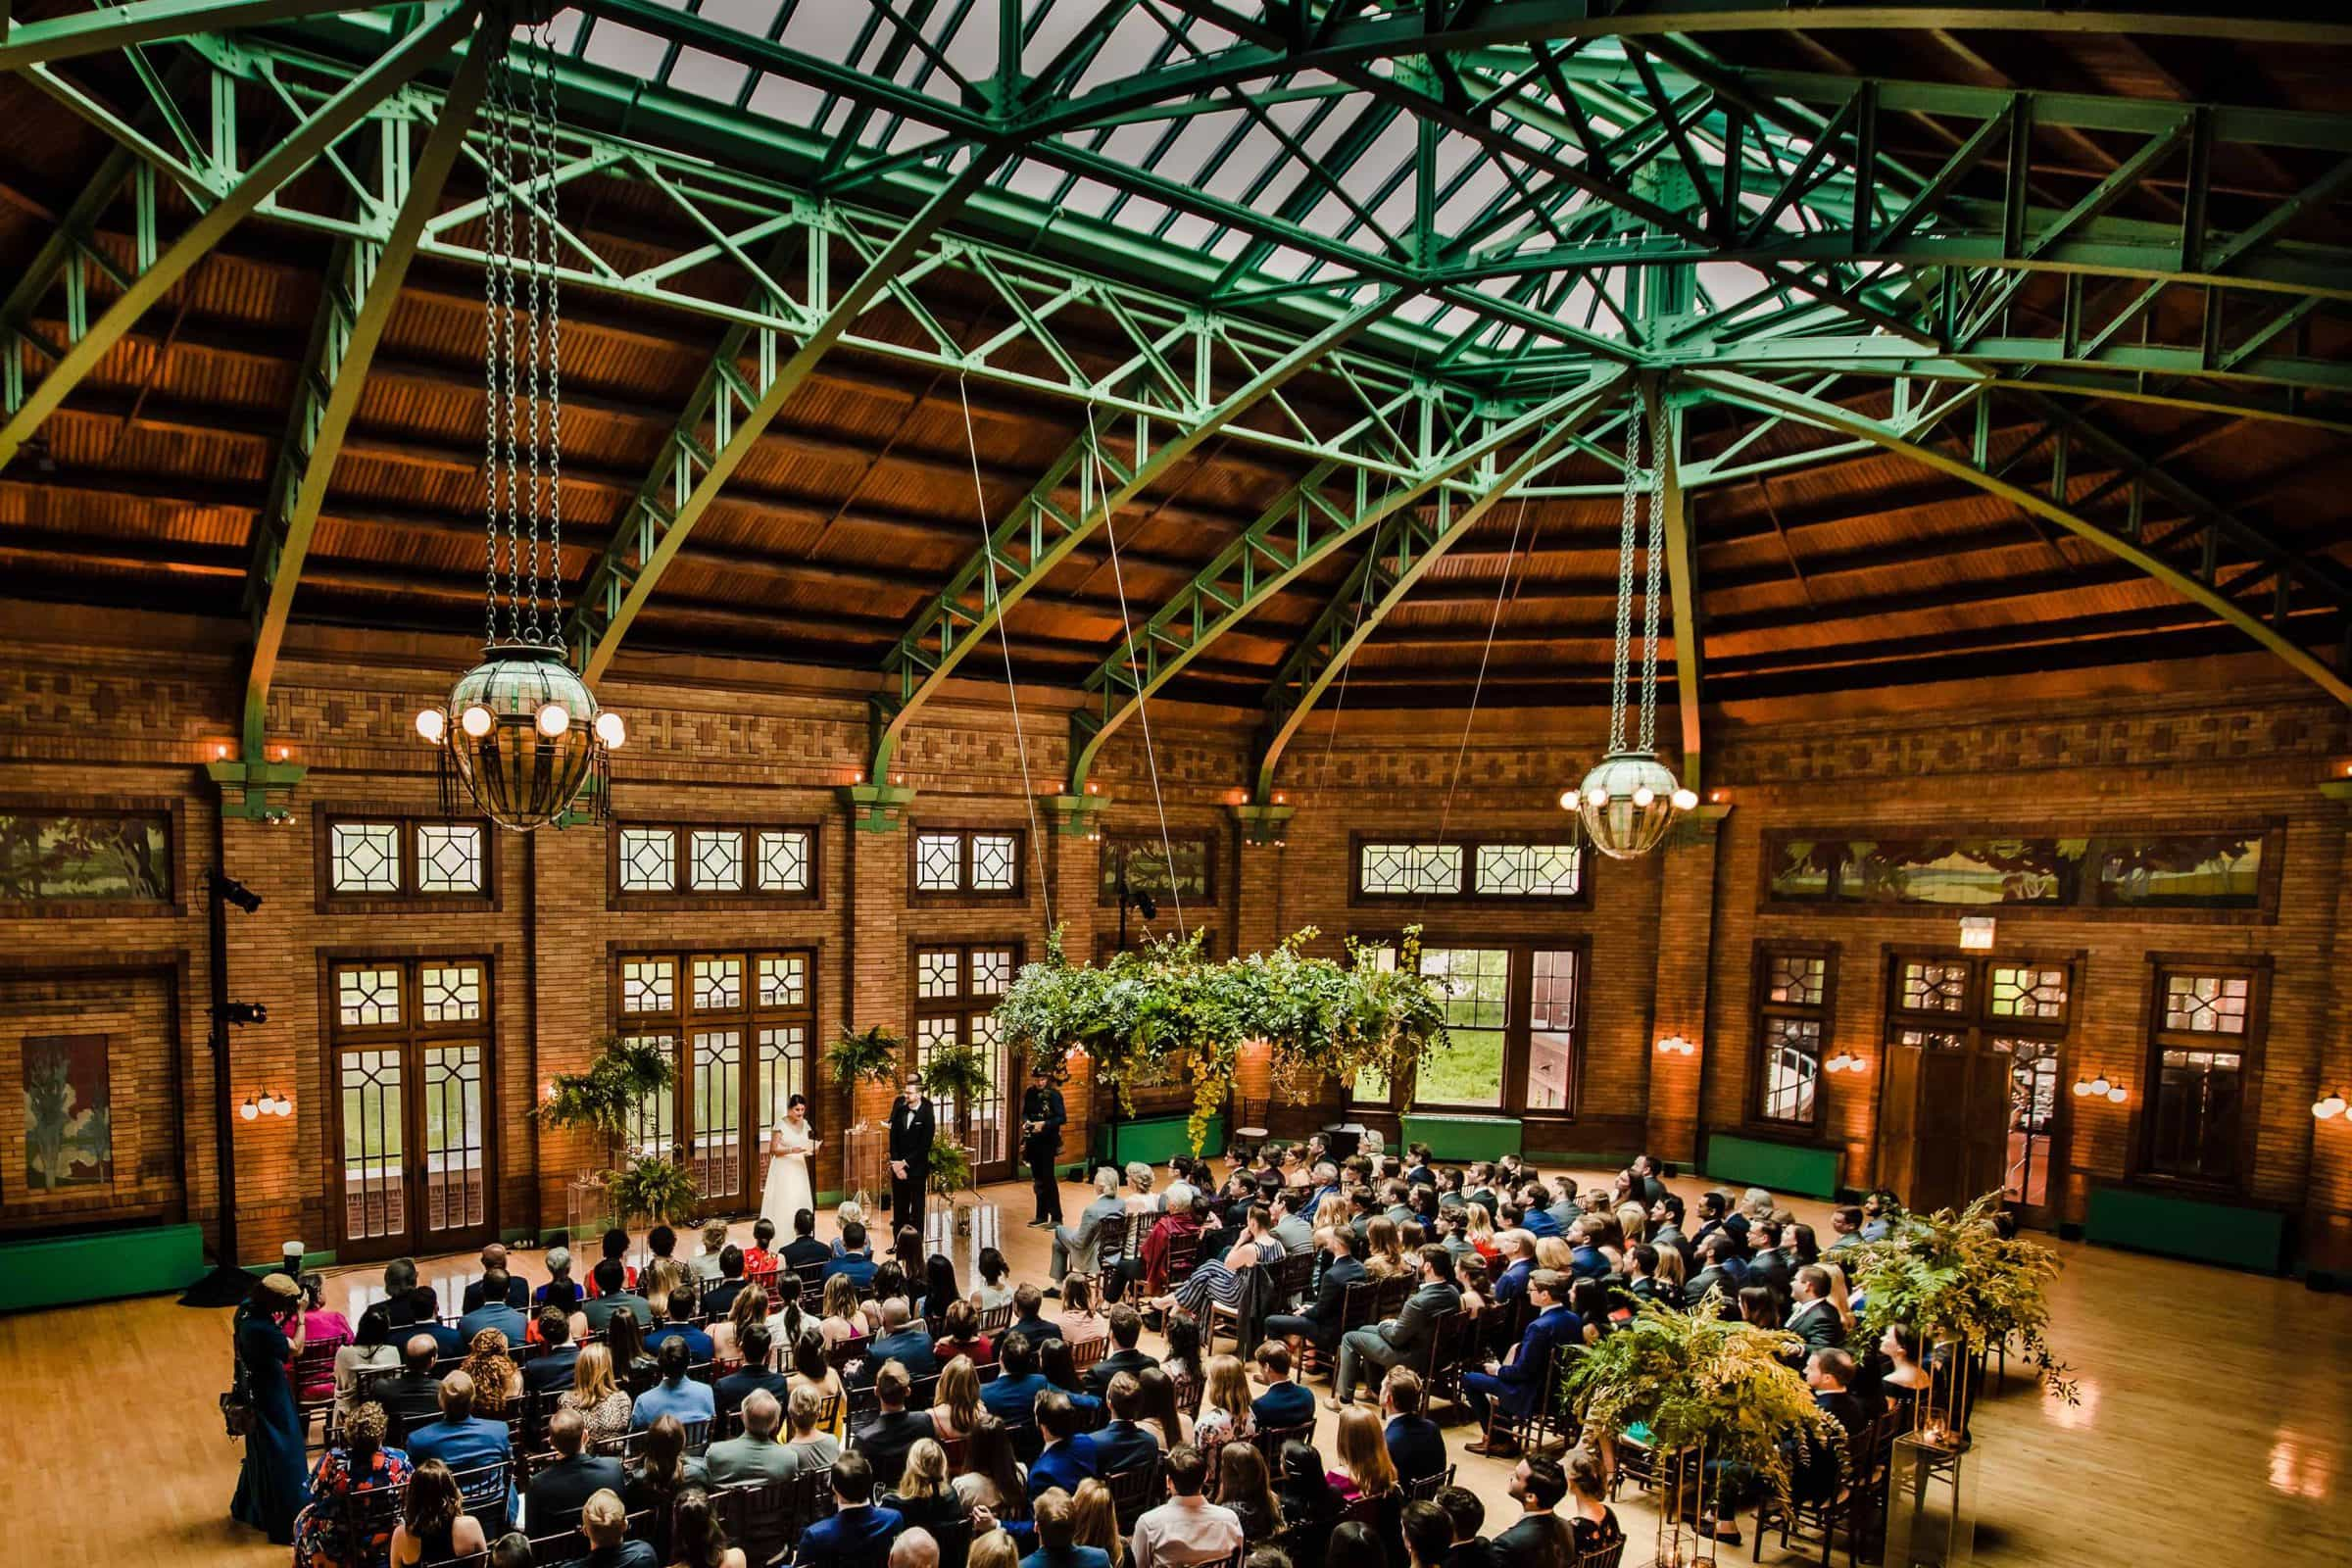 Epic photo of a bride and groom exchanging vows during their wedding ceremony at Cafe Brauer in Chicago, Illinois.